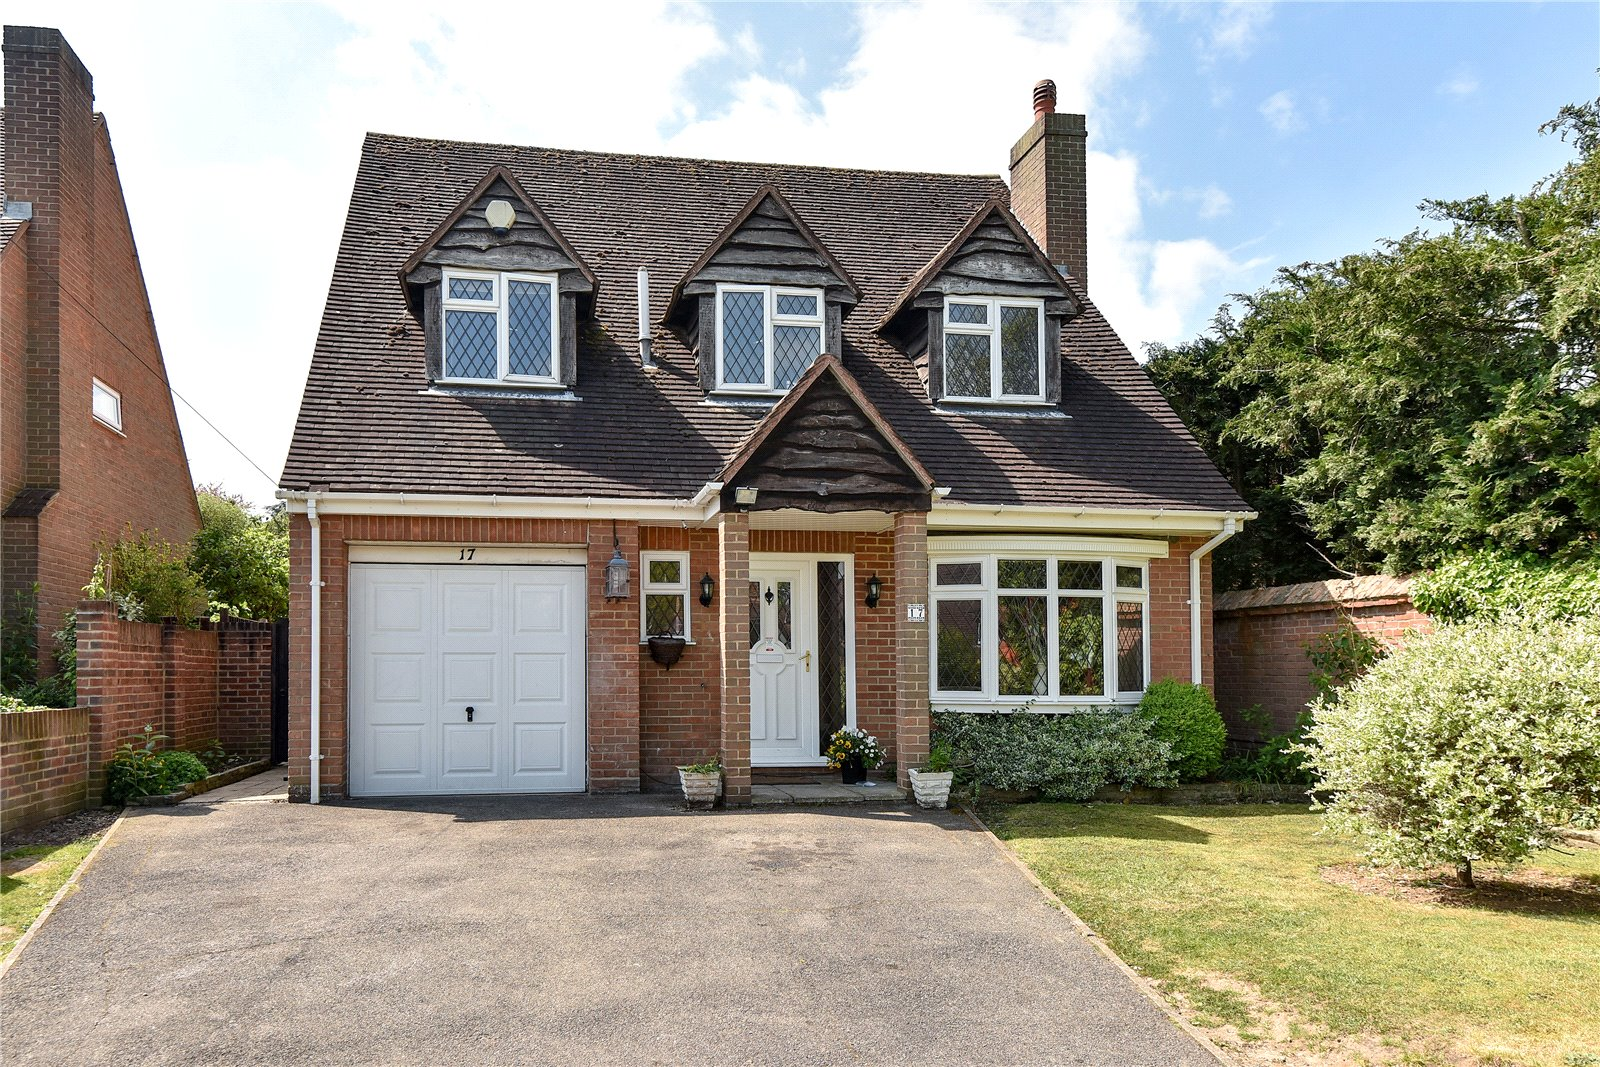 4 Bedrooms Detached House for sale in Bridle Road, Maidenhead, Berkshire, SL6